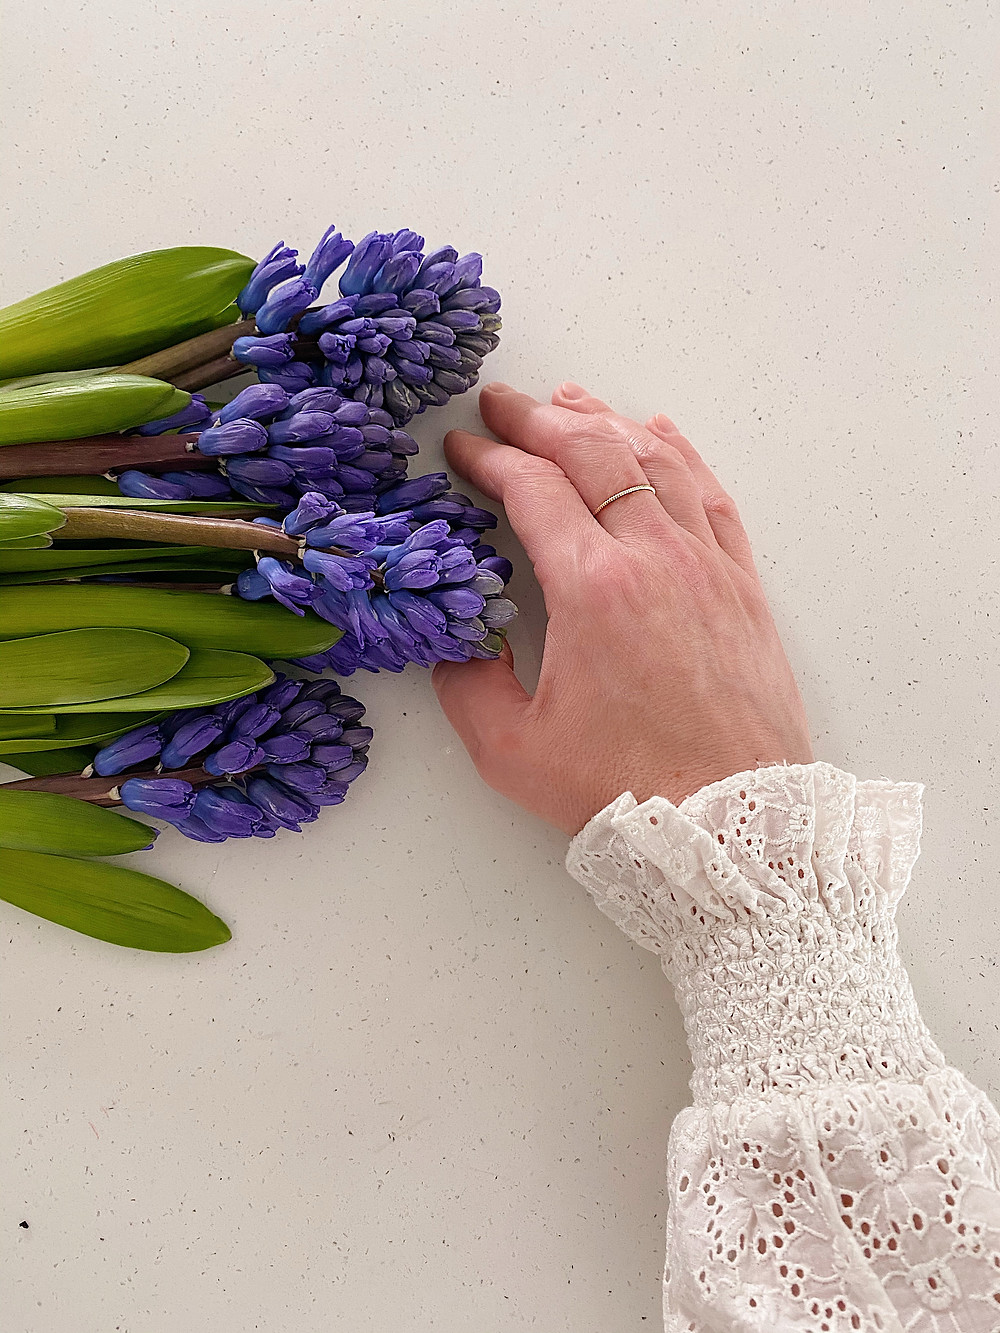 hyacinths and a hand